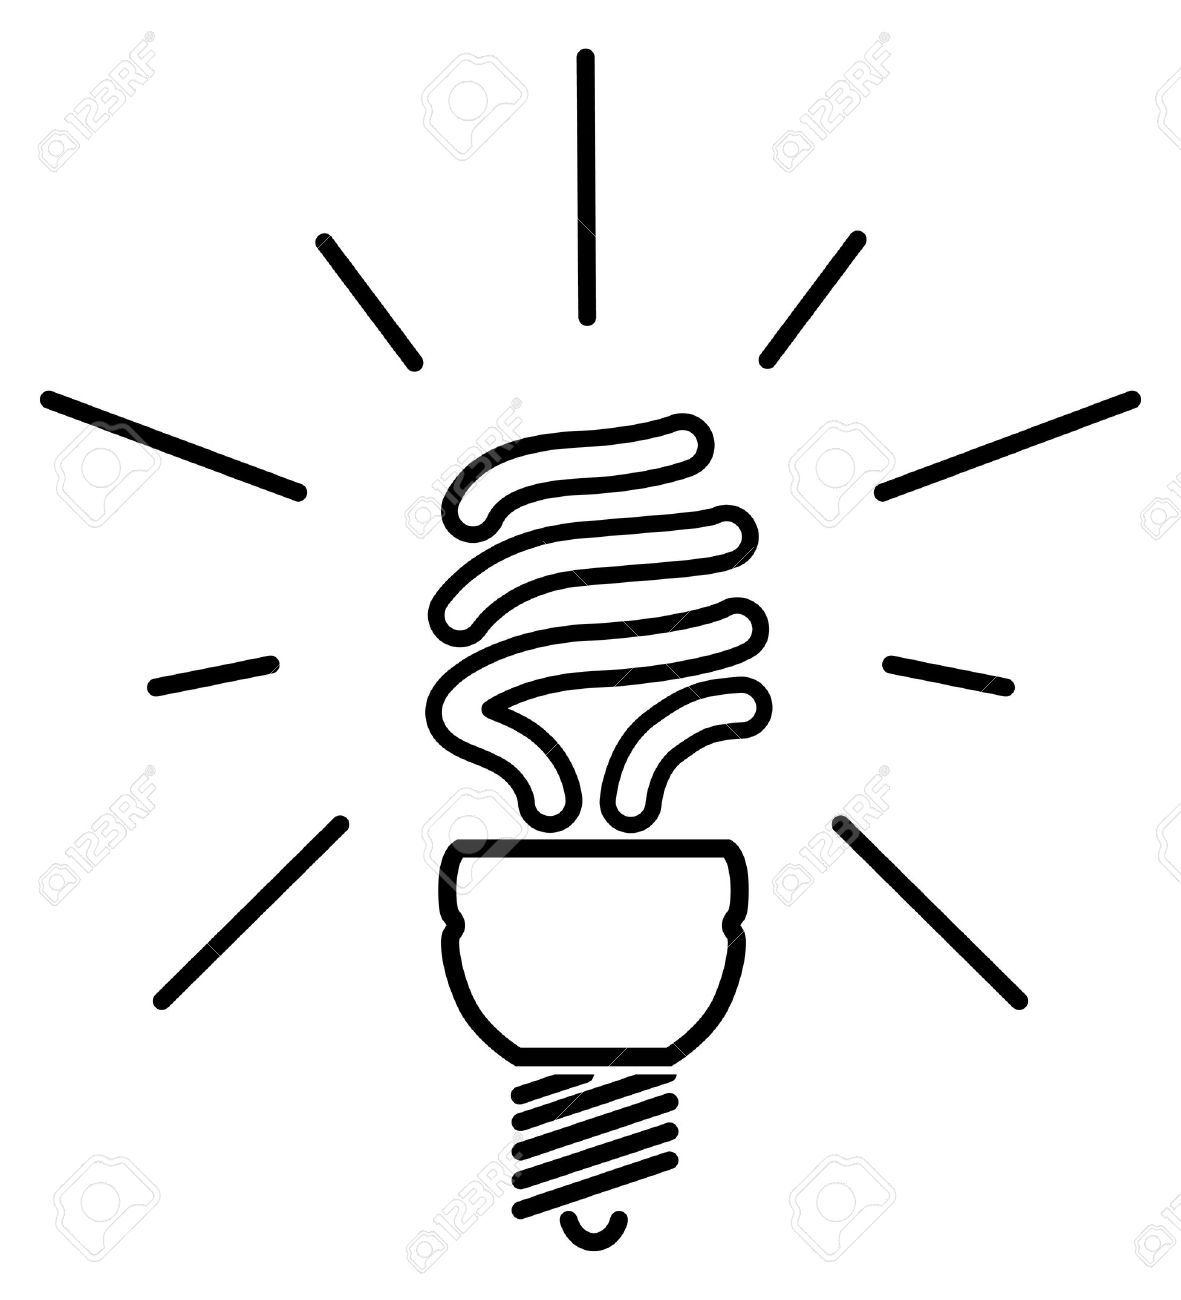 Energy Clipart Black And White.